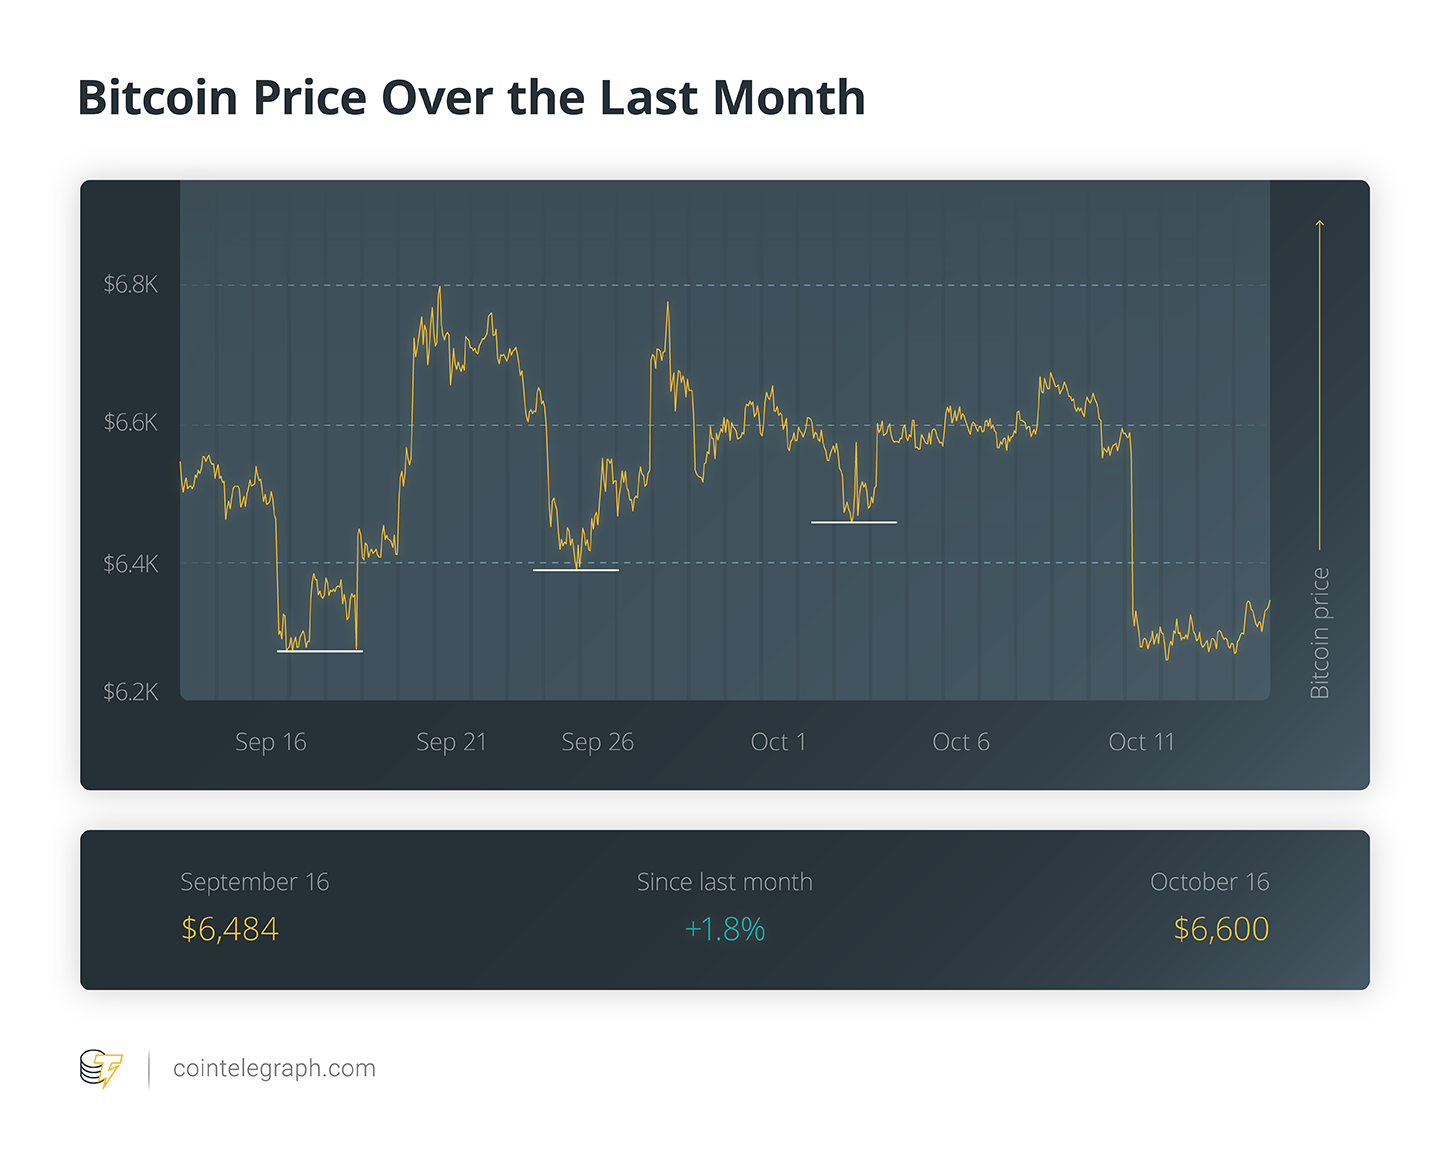 Bitcoin Price Over the Last Month